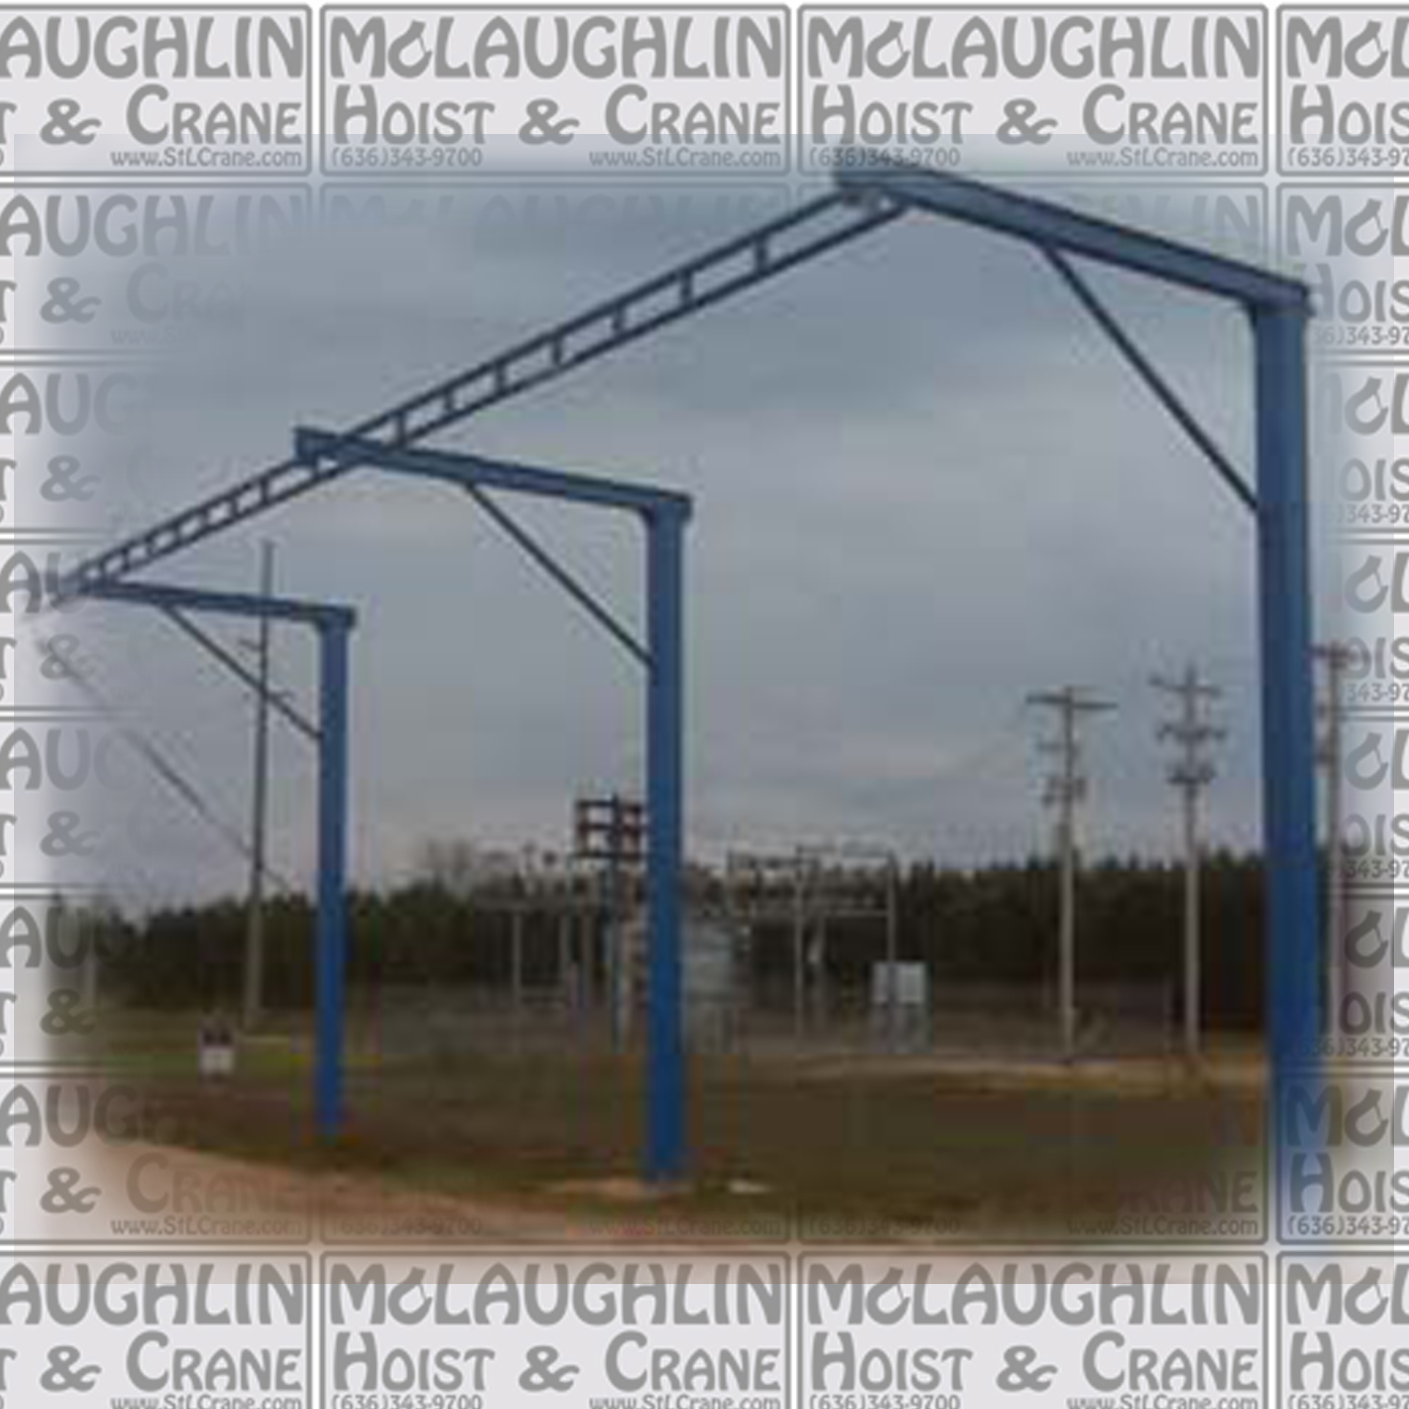 Tether Track Free Standing Monorail System